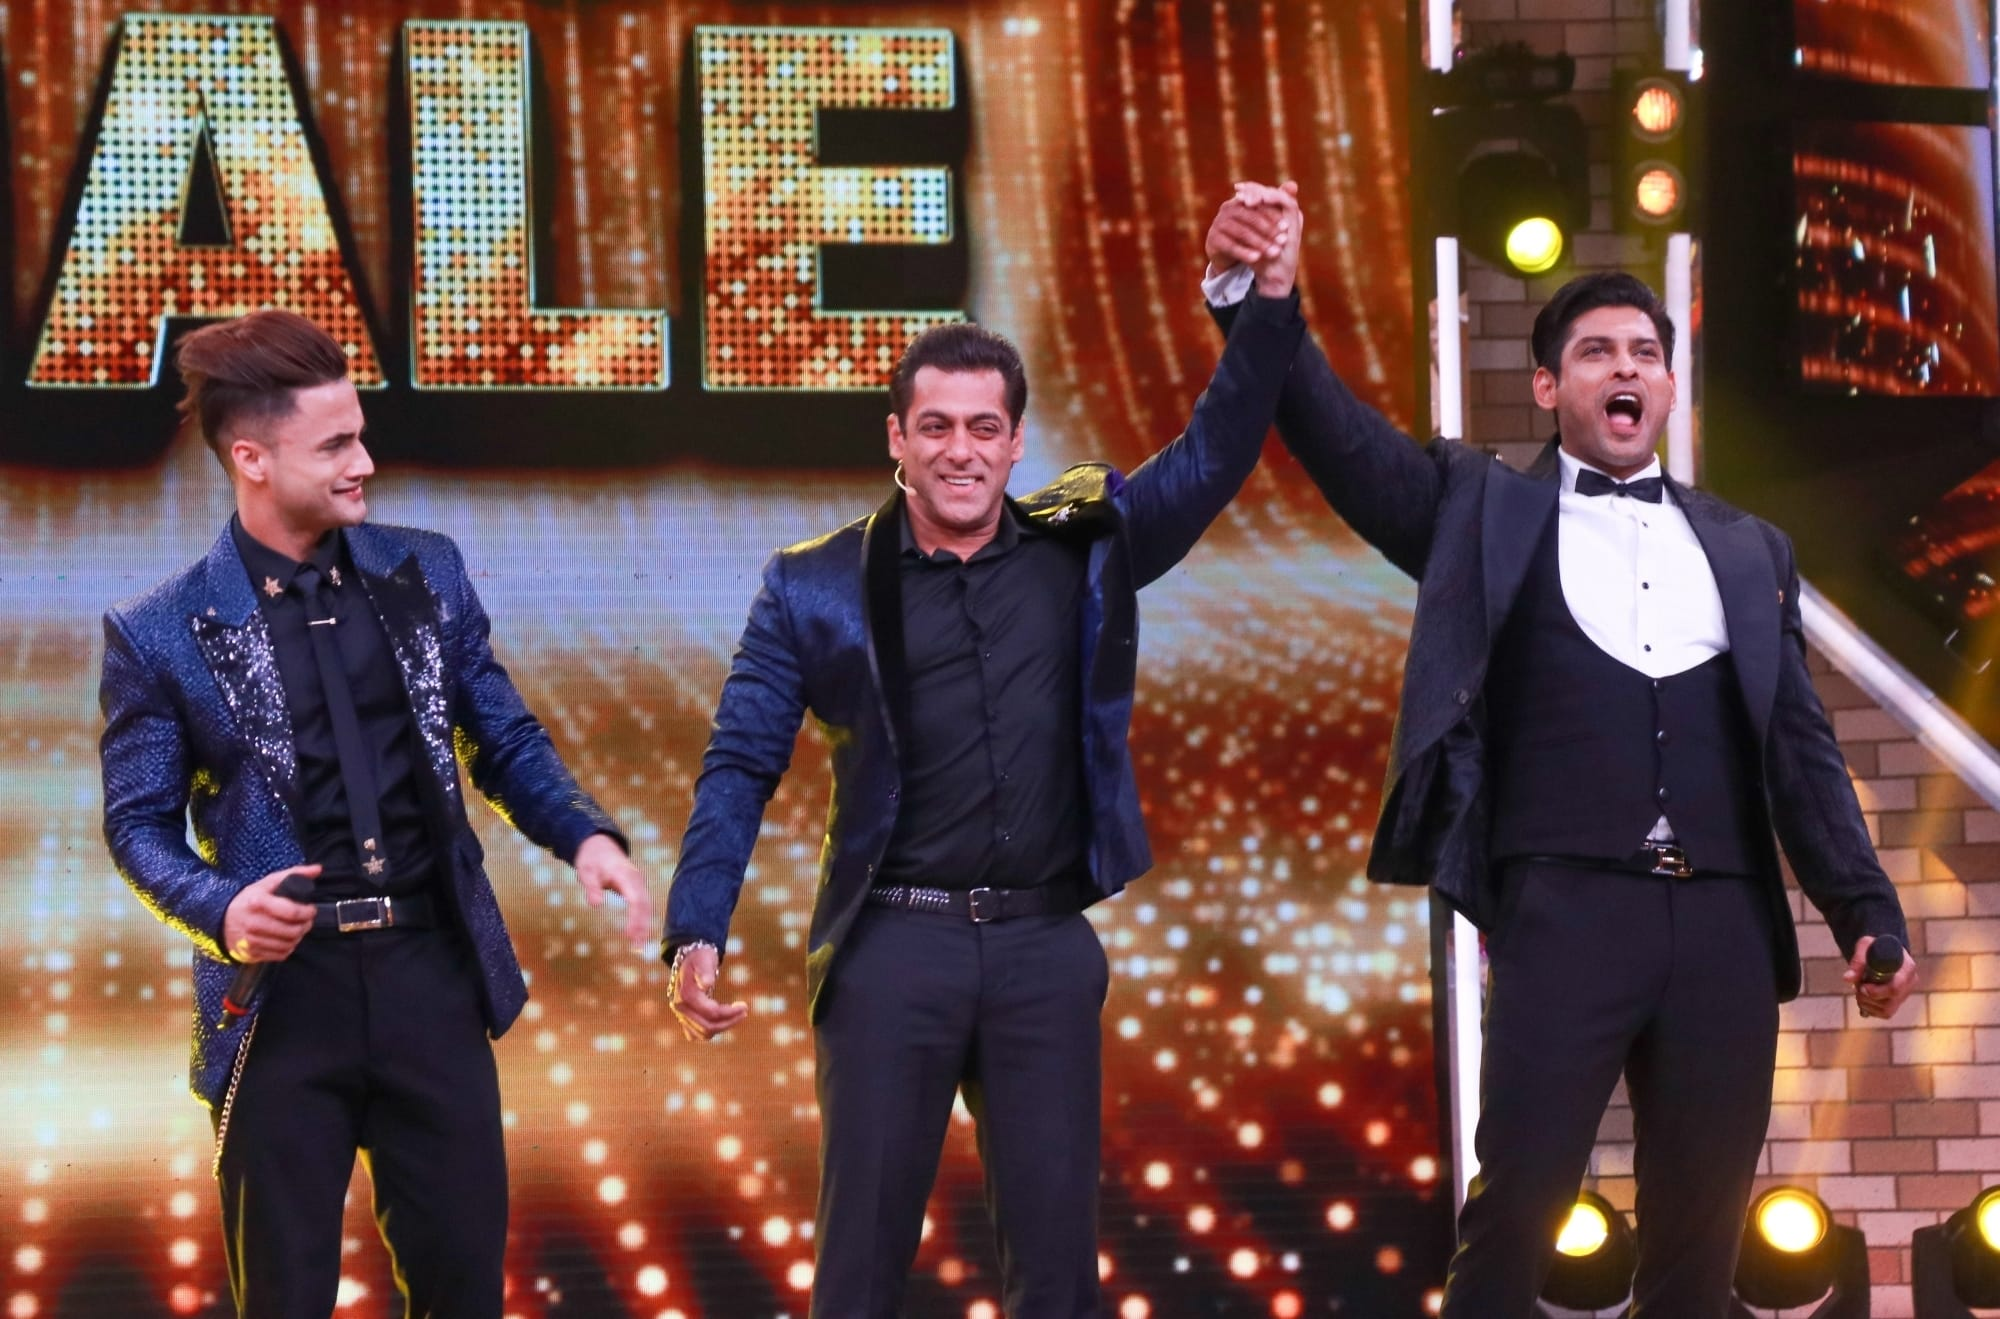 Bigg Boss 13: Viral Video From Control Room Reveals Asim Riaz, Sidharth Shukla Received Equal Votes On The Finale; Watch